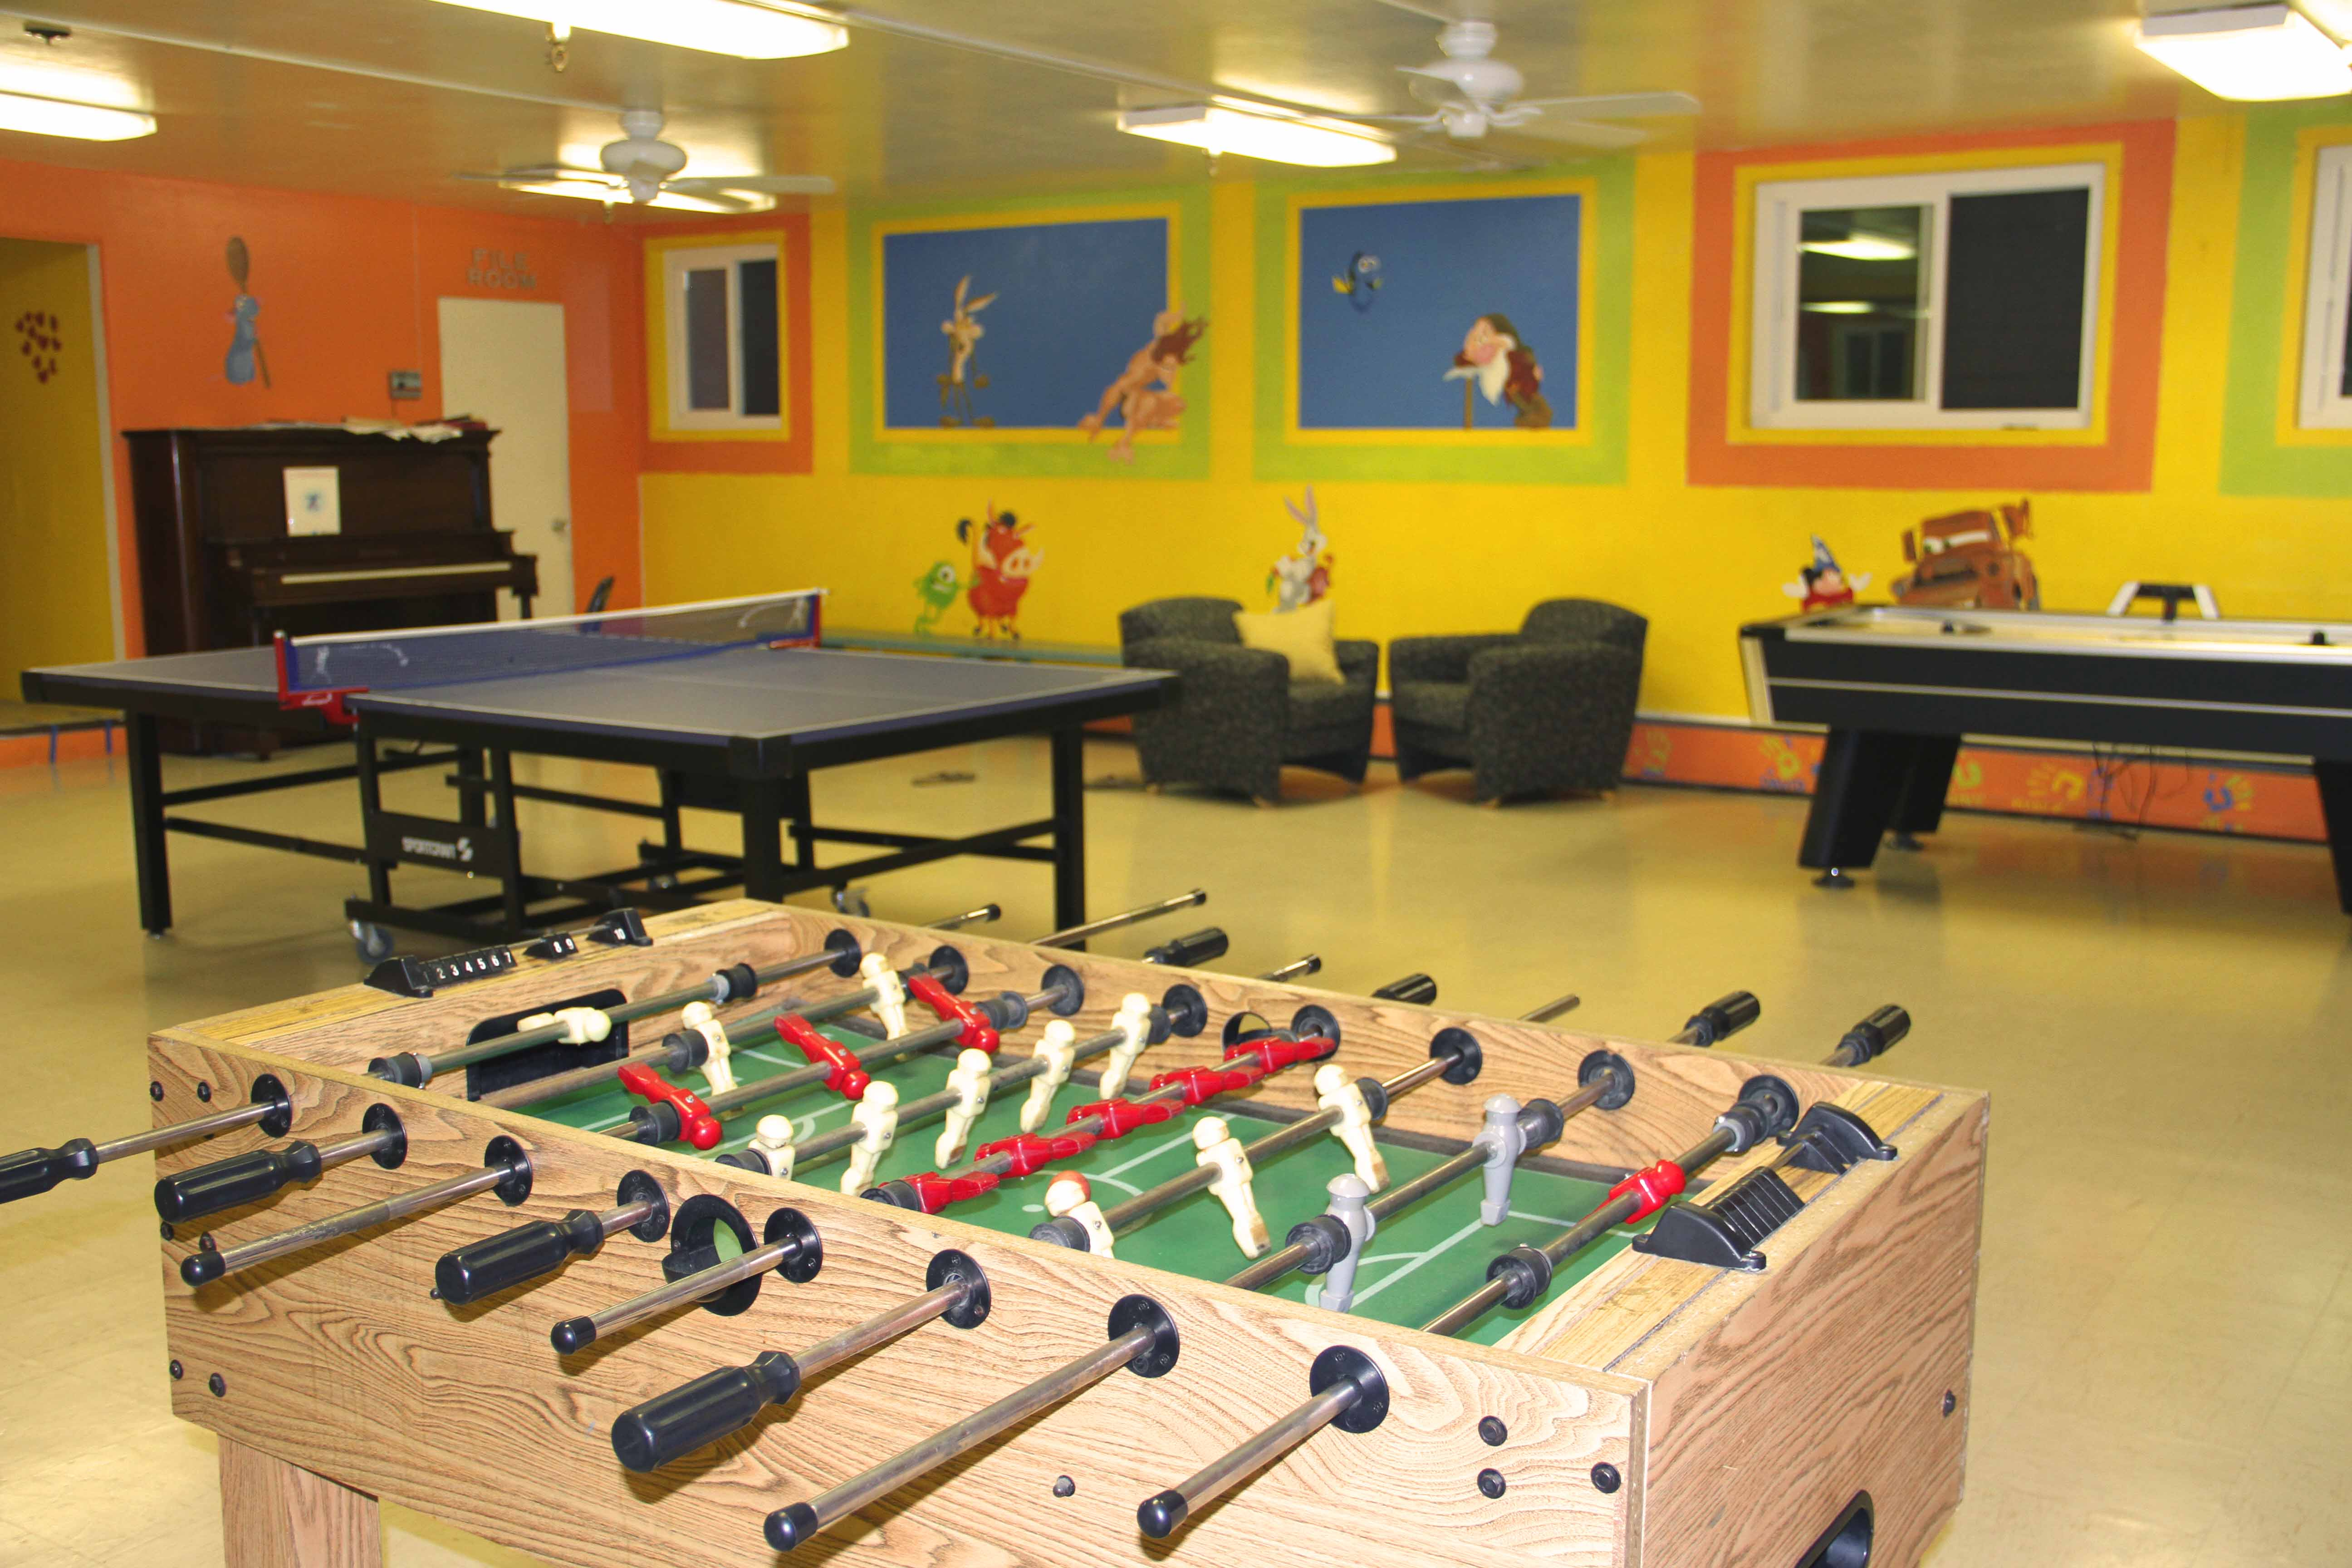 Residents Playing Fussball in Recreation Room